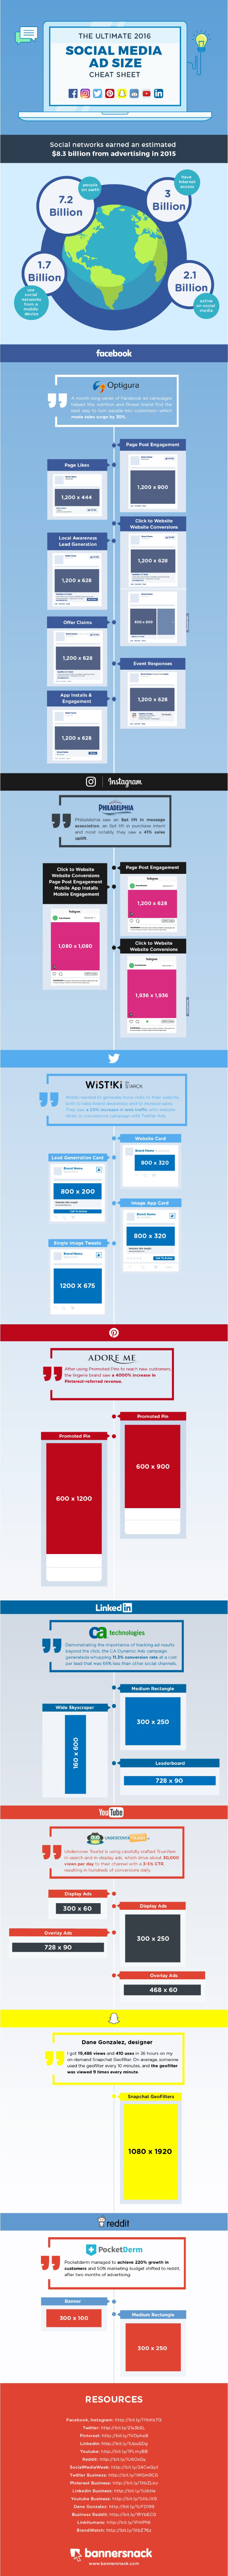 The Latest Ad Specifications for Social Networks!